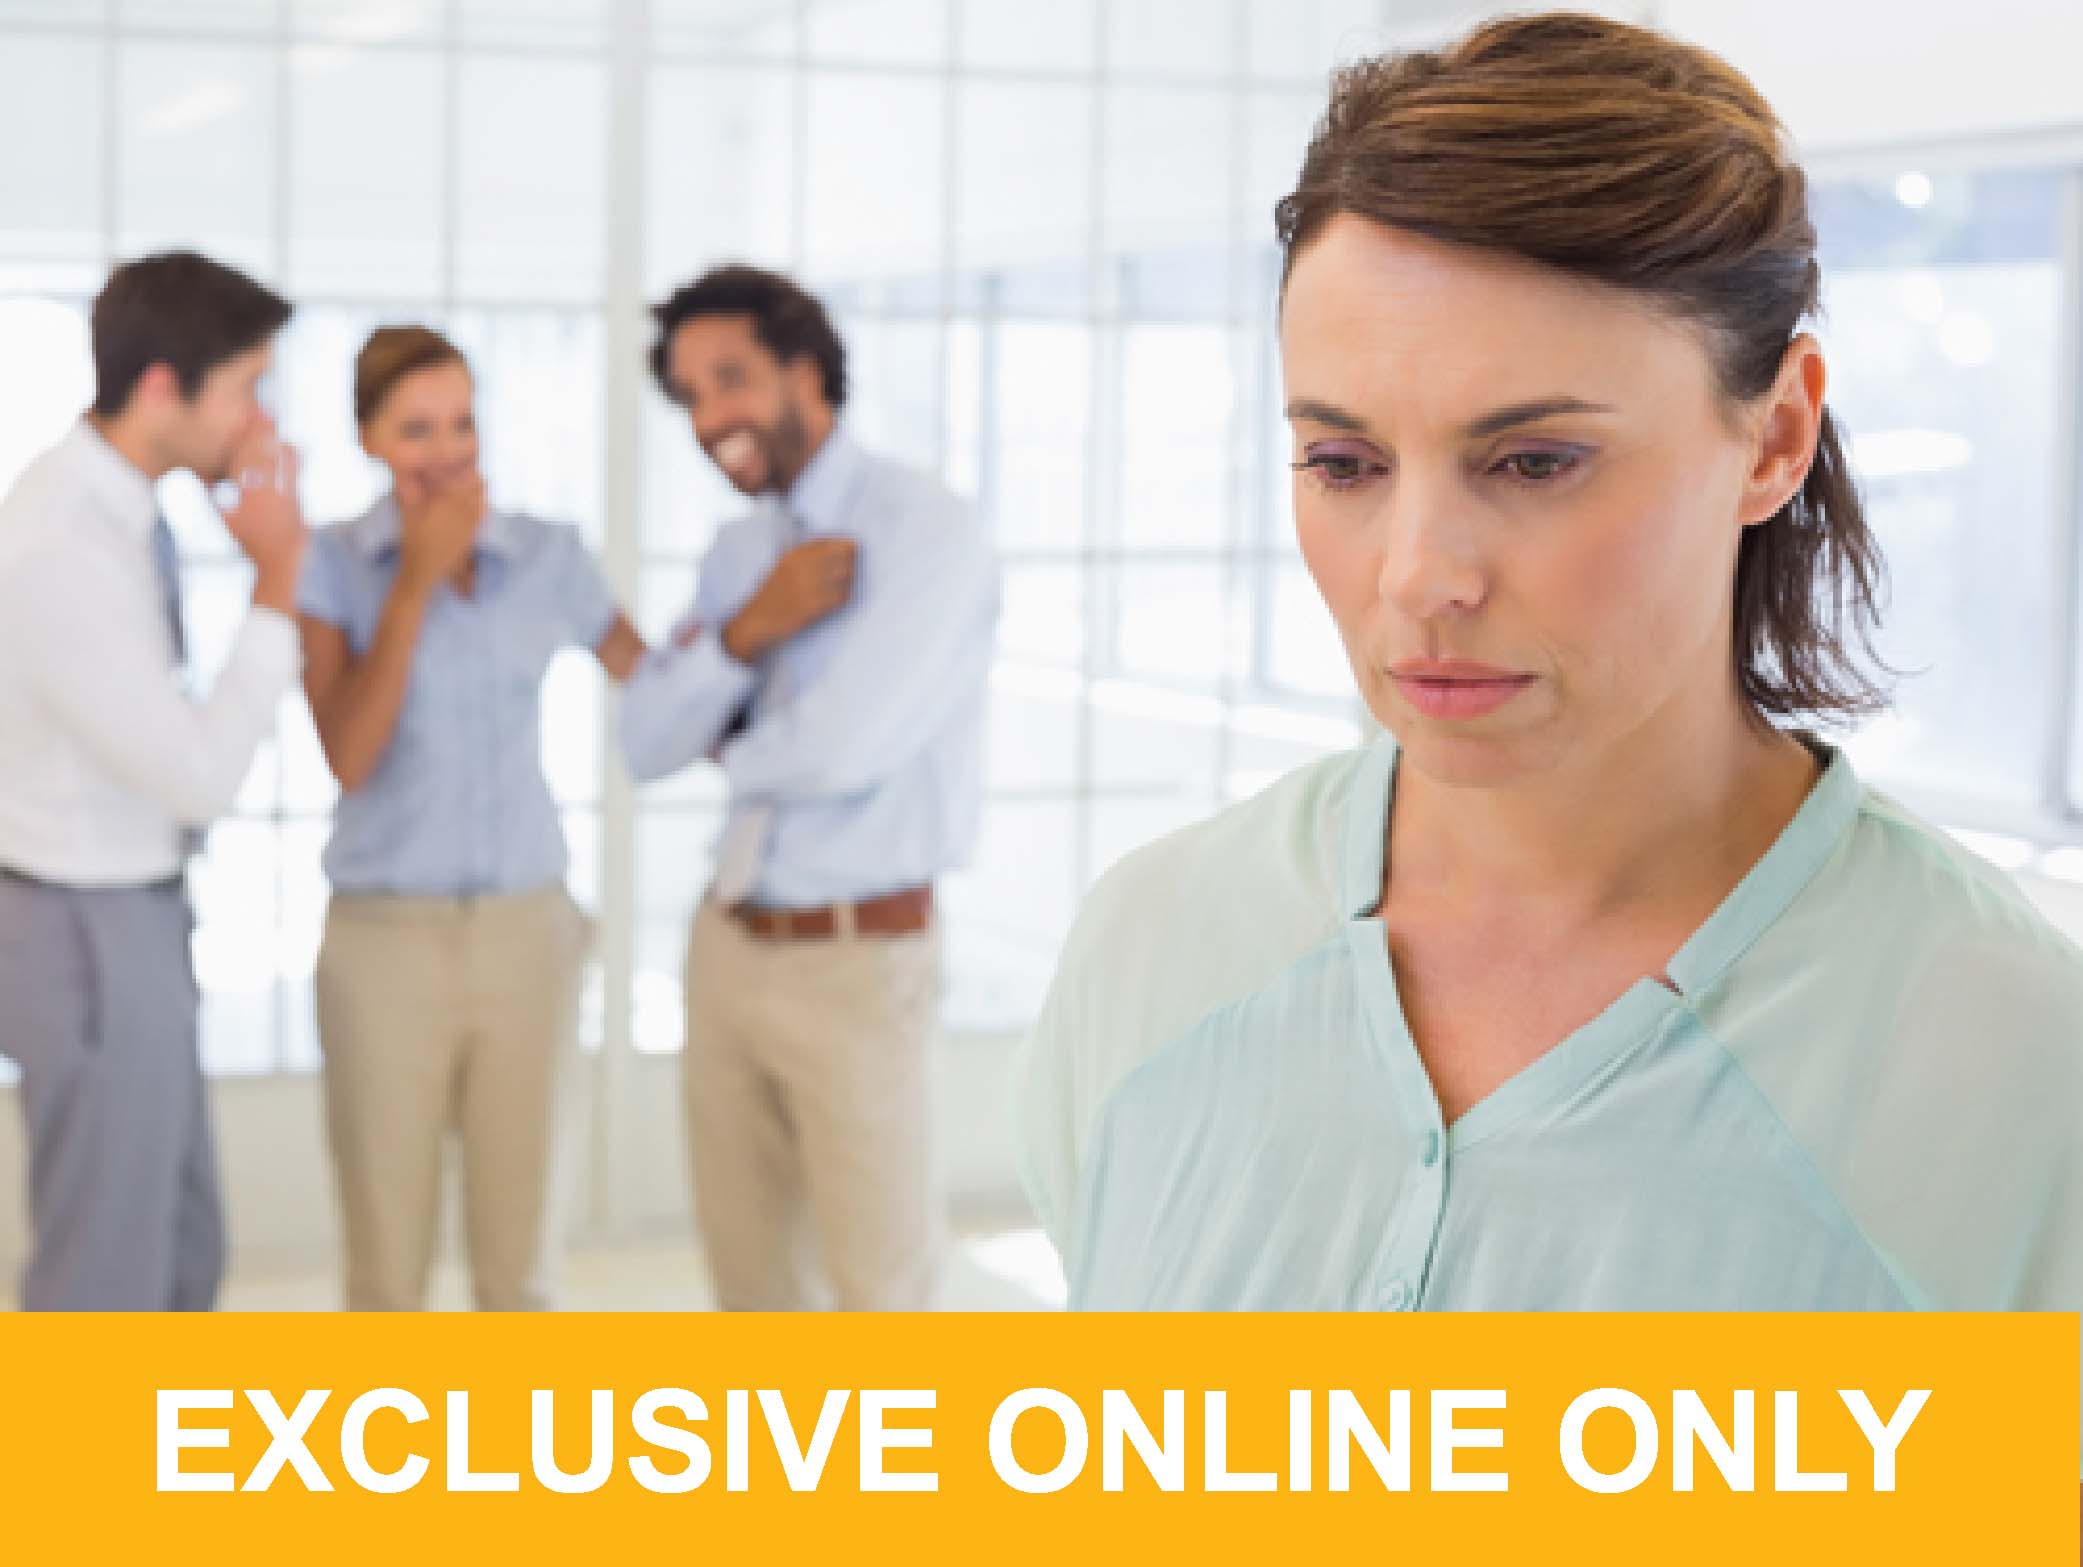 managing conflict exclusive online only